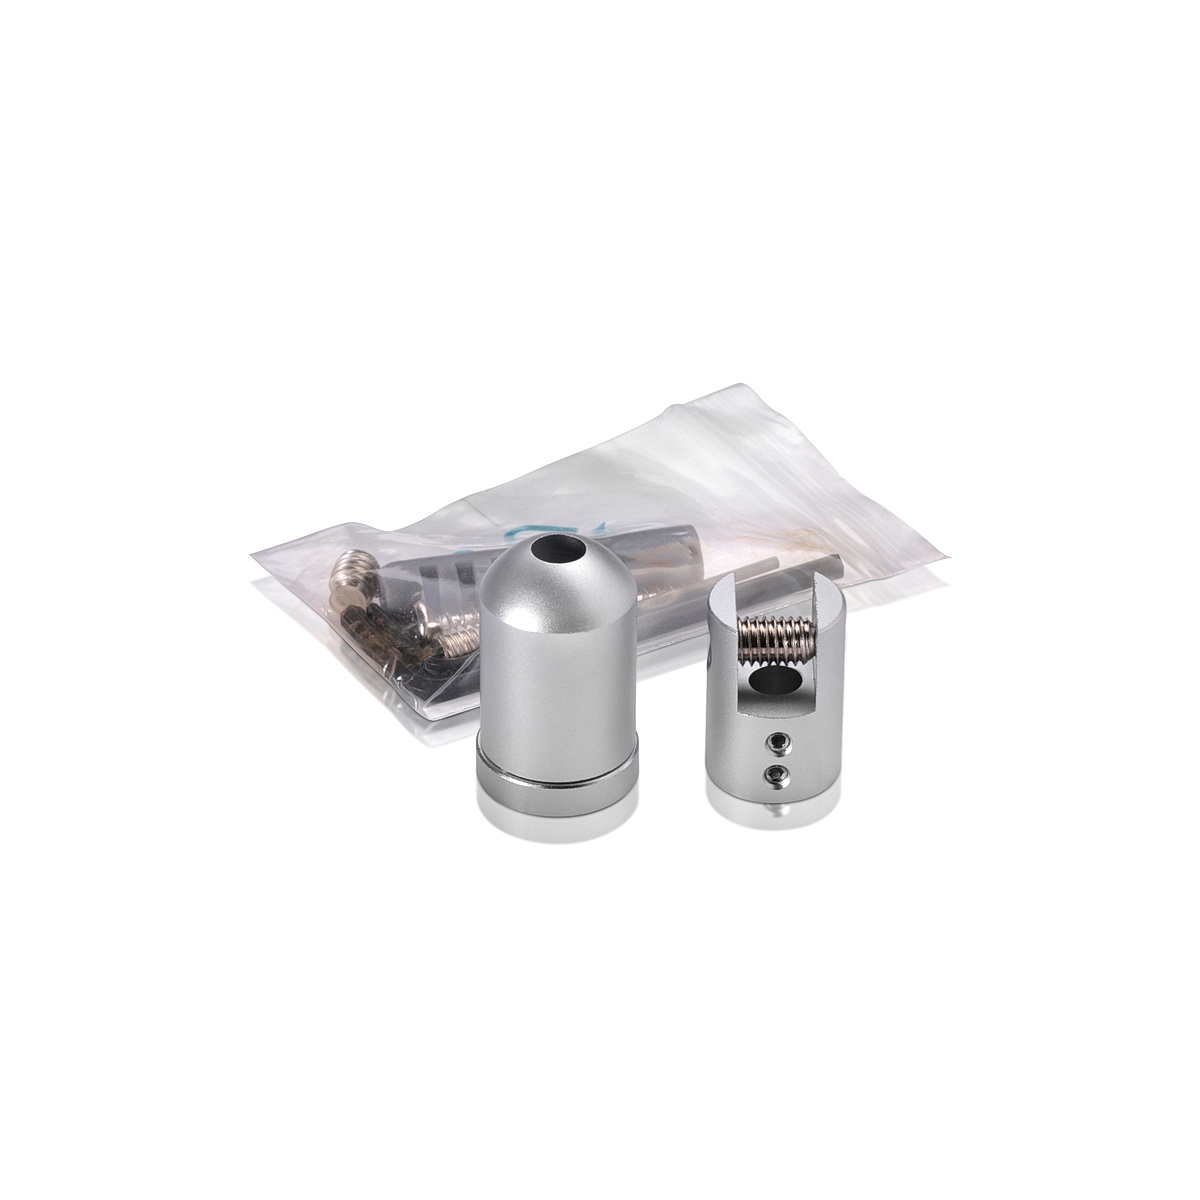 Ceiling Suspended Kit for Rod - Aluminum